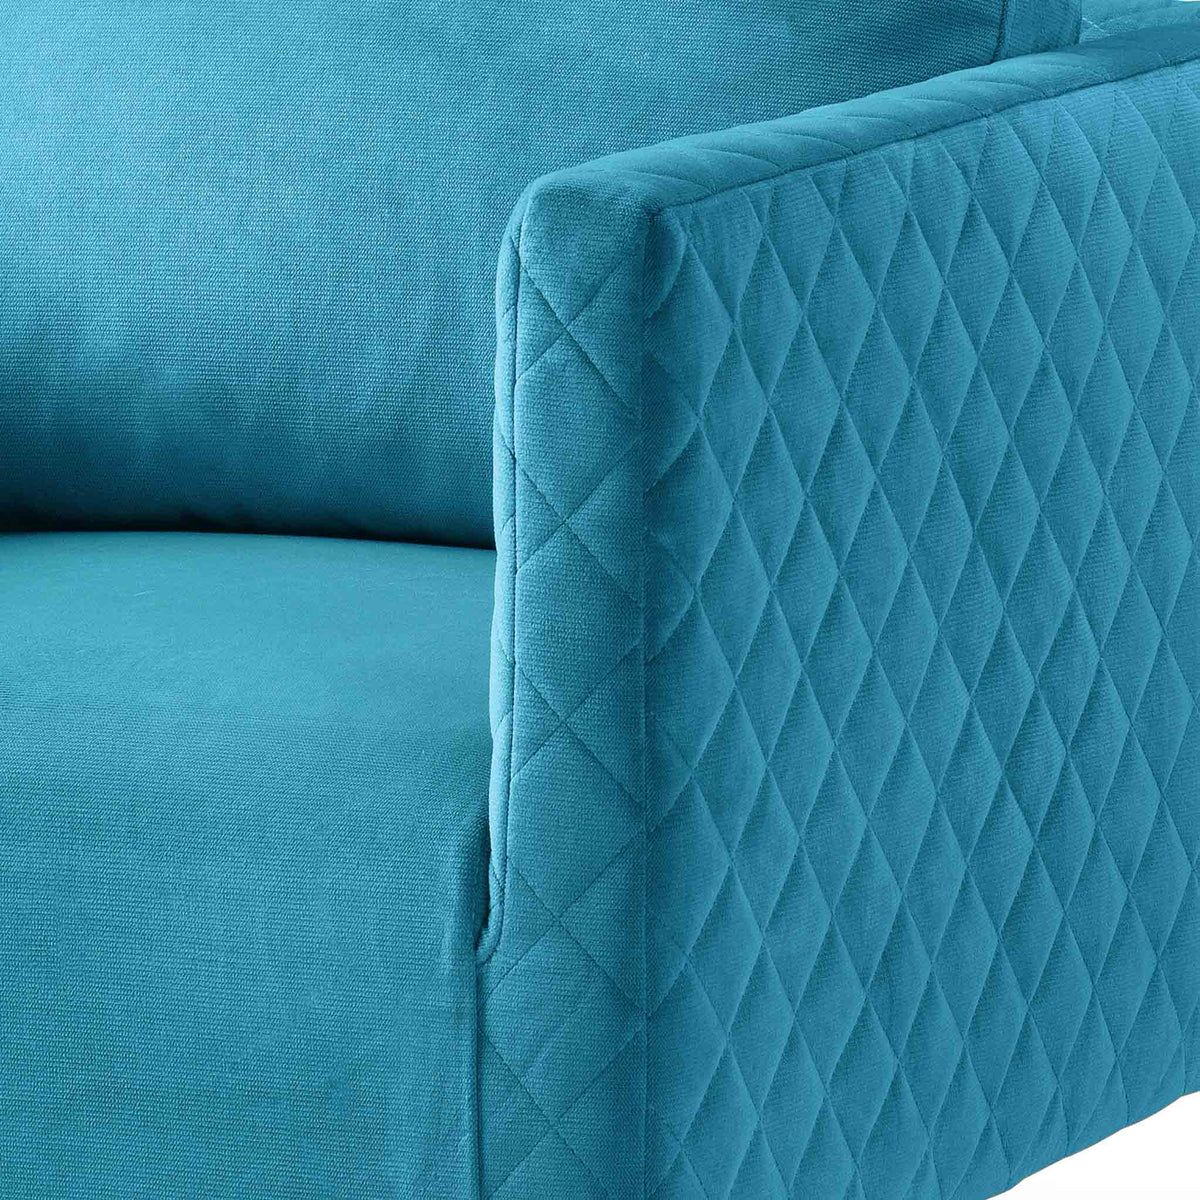 close up of the diamond stitching on the Bali Lagoon Velvet Accent Chair